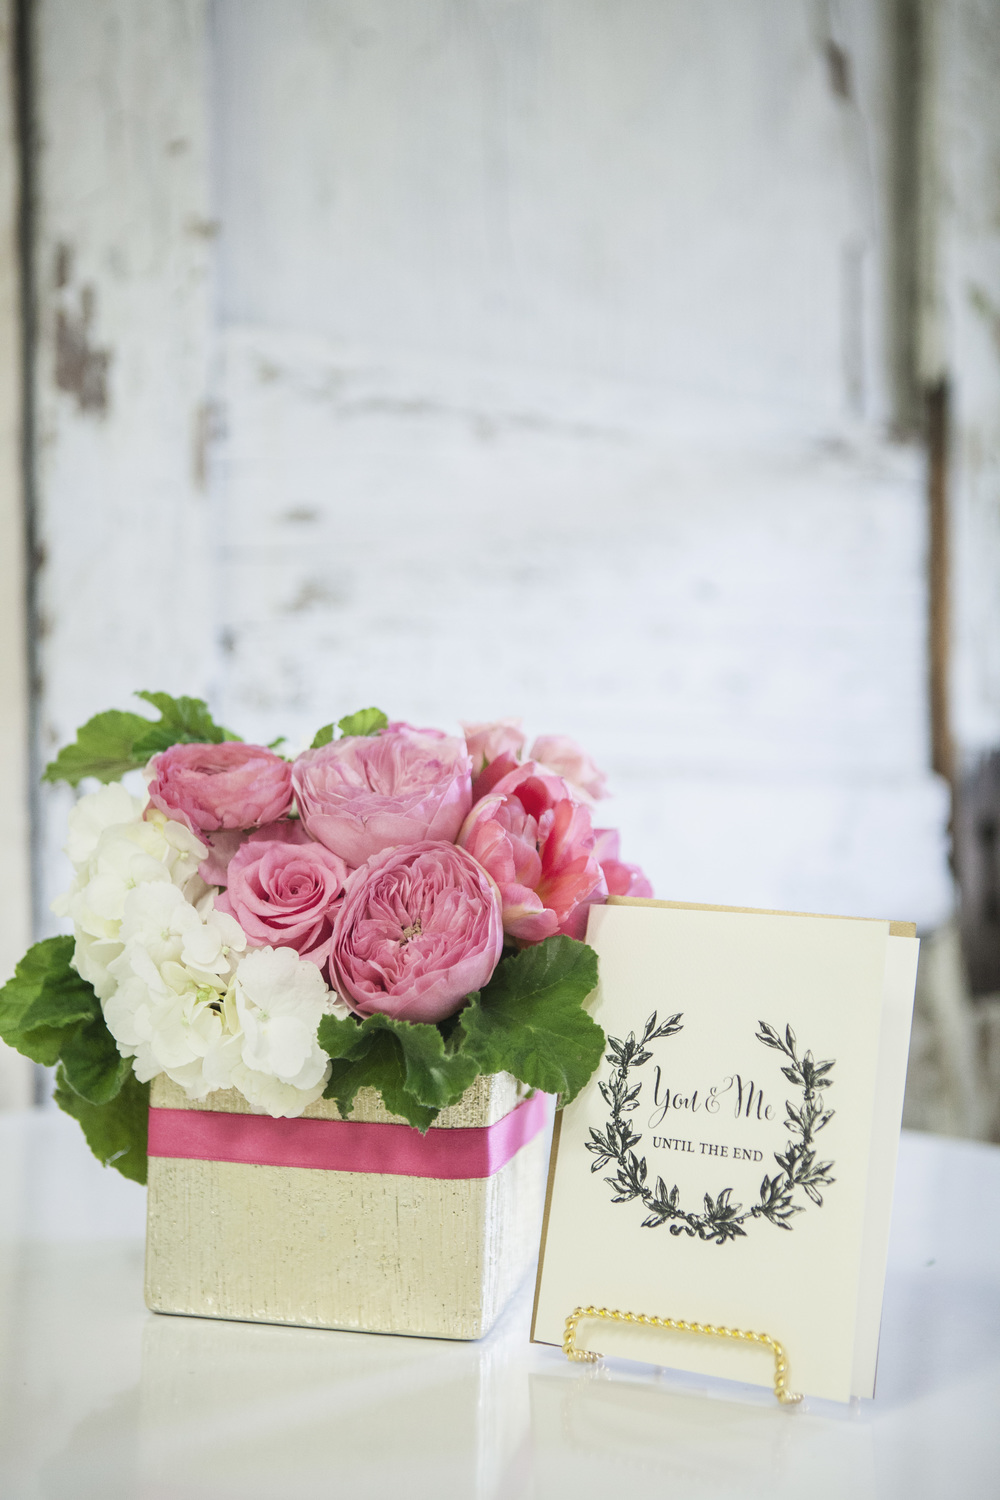 Gilded Cube with Bold Pink Band- $60 Featuring Garden Roses, Roses, Tulips, Ranunculas, Hydrangea & Scented Geranium Leaves. Includes your choice of greeting card. Upgrade Available -$10 (Additional Ranunculas & Tulips)